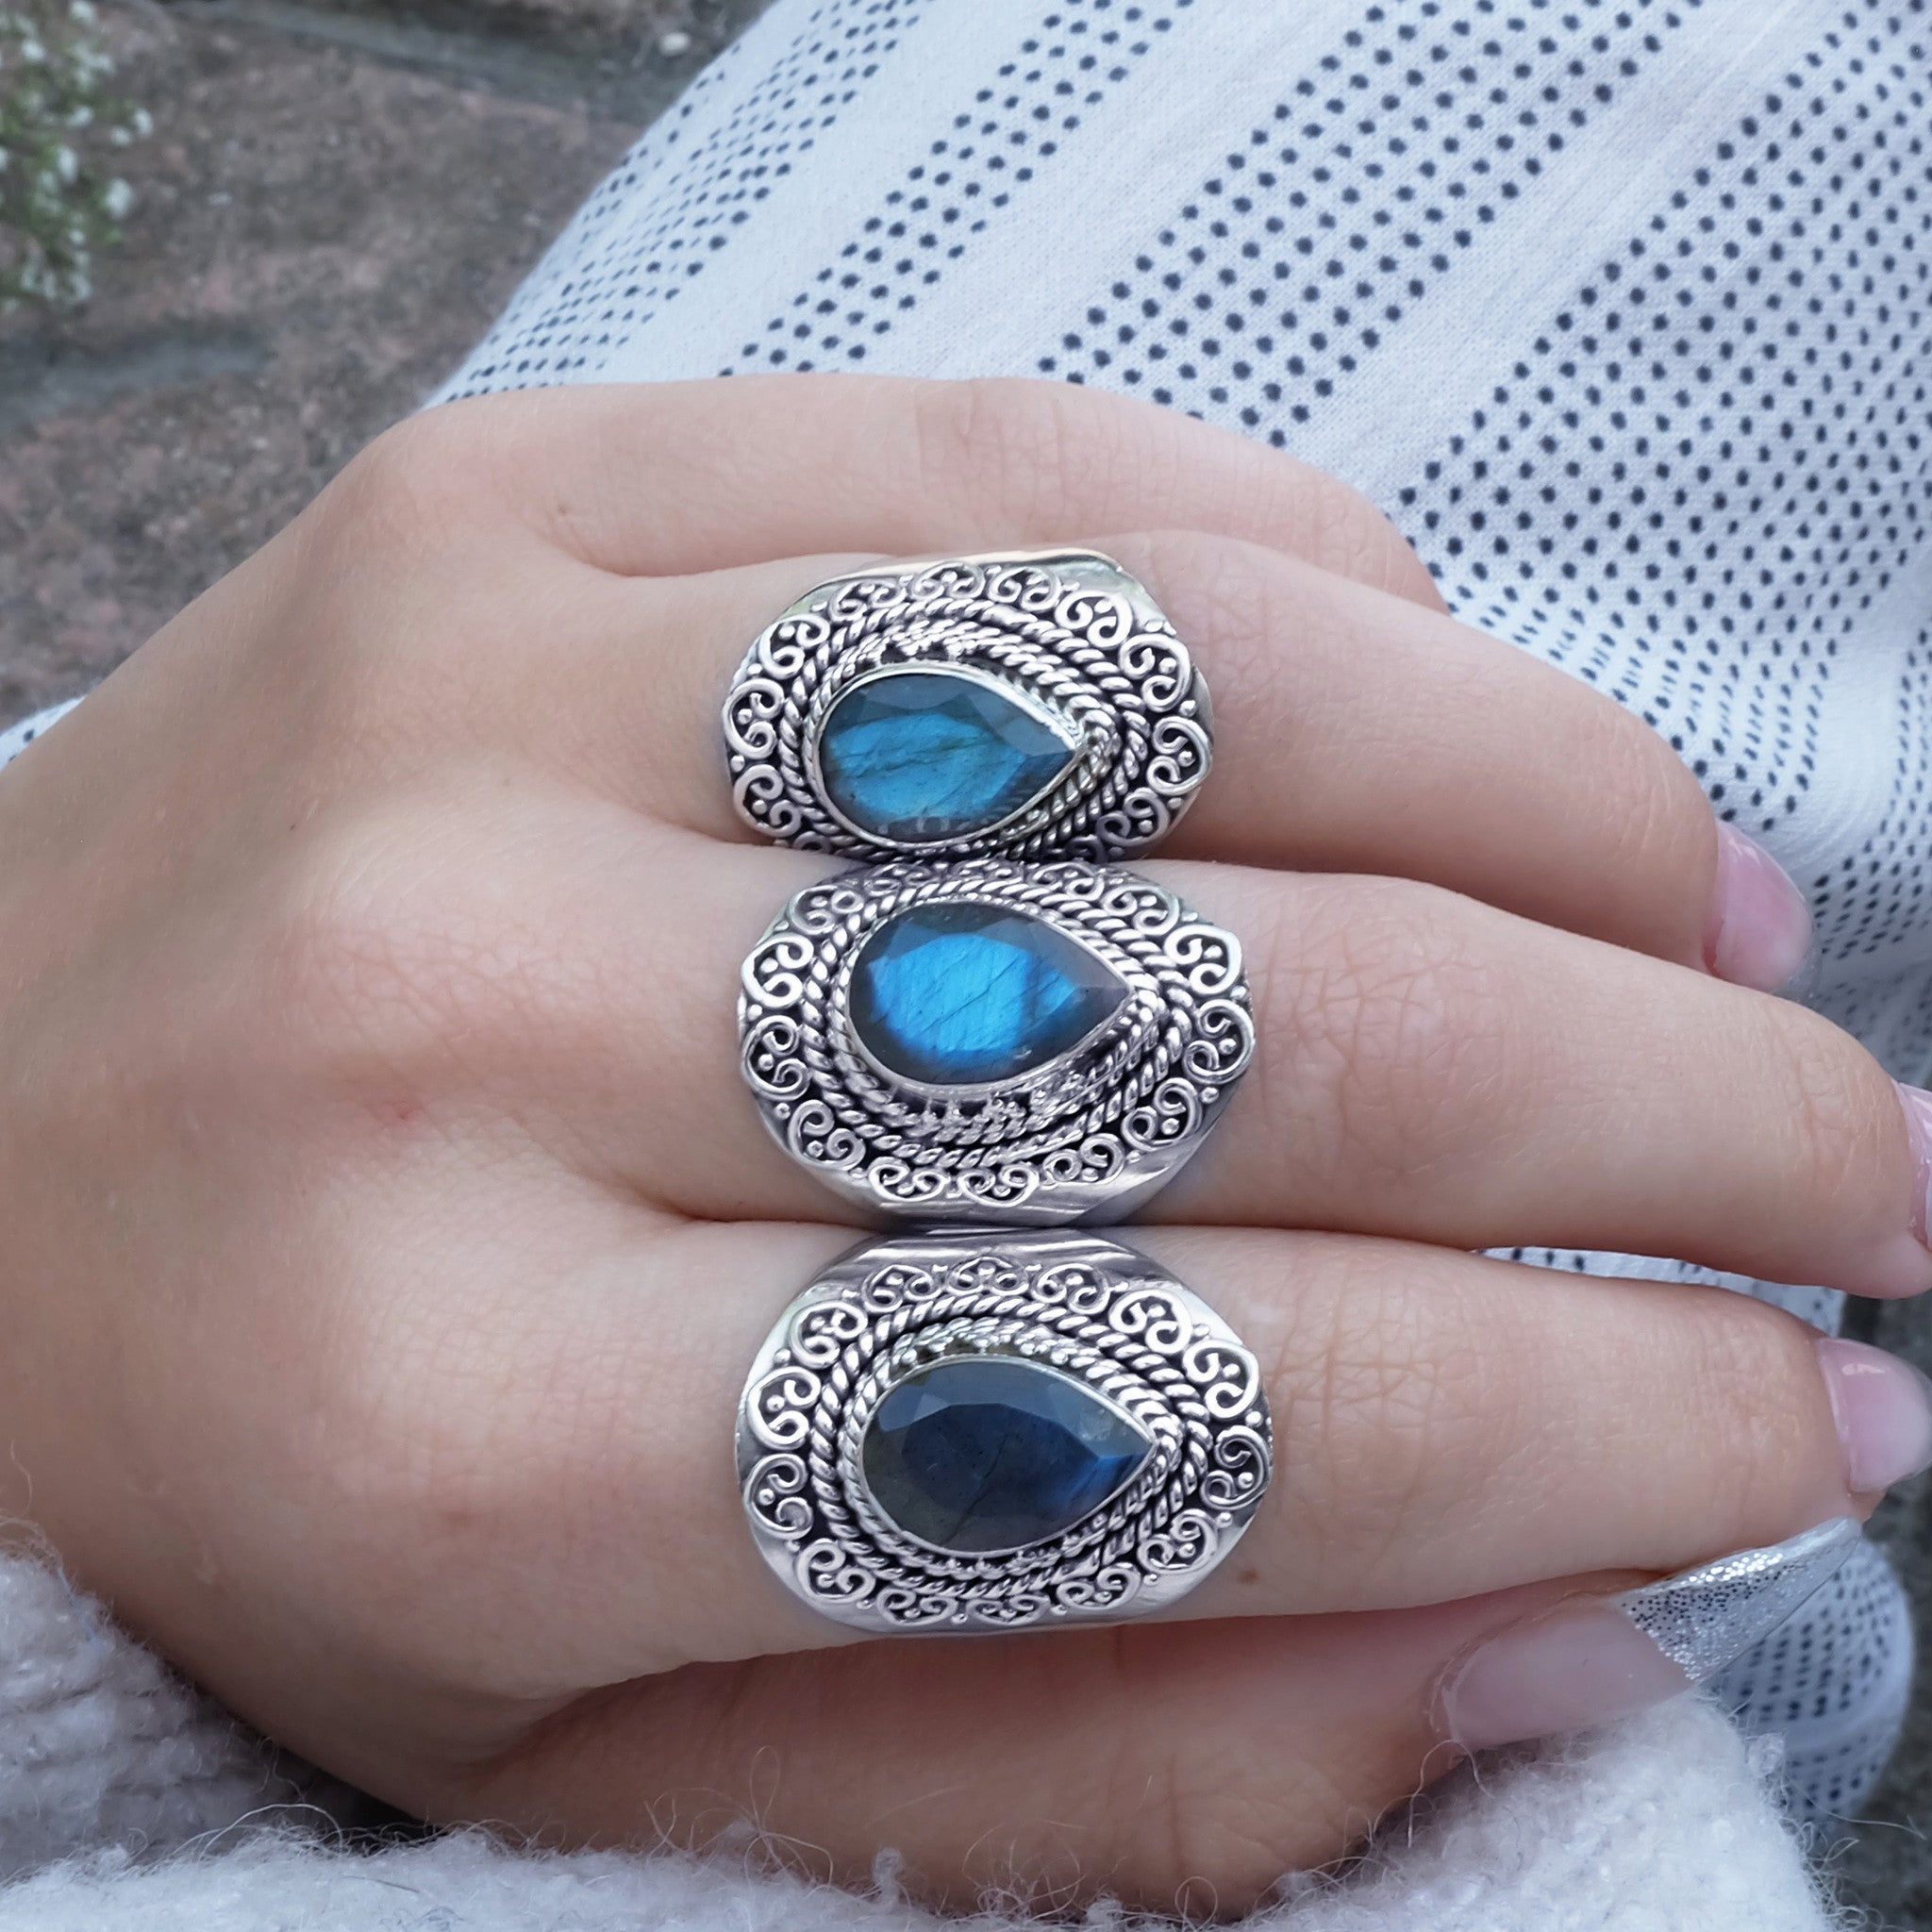 CUT STONE LABRADORITE GUINEVERE RING